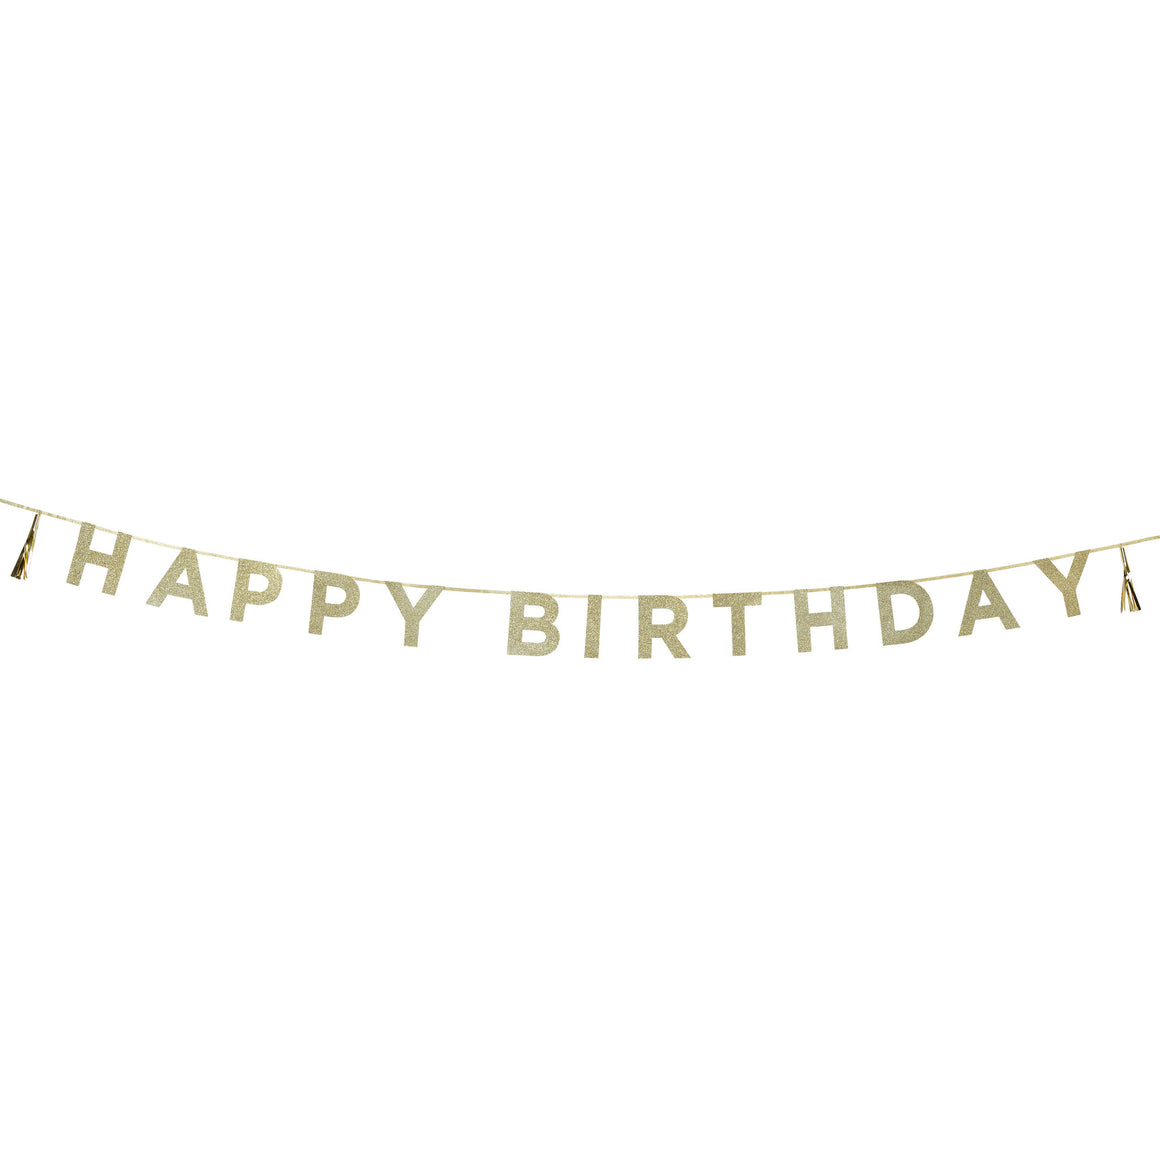 Say It With Glitter ' Happy Birthday' Banner - The Love Trees